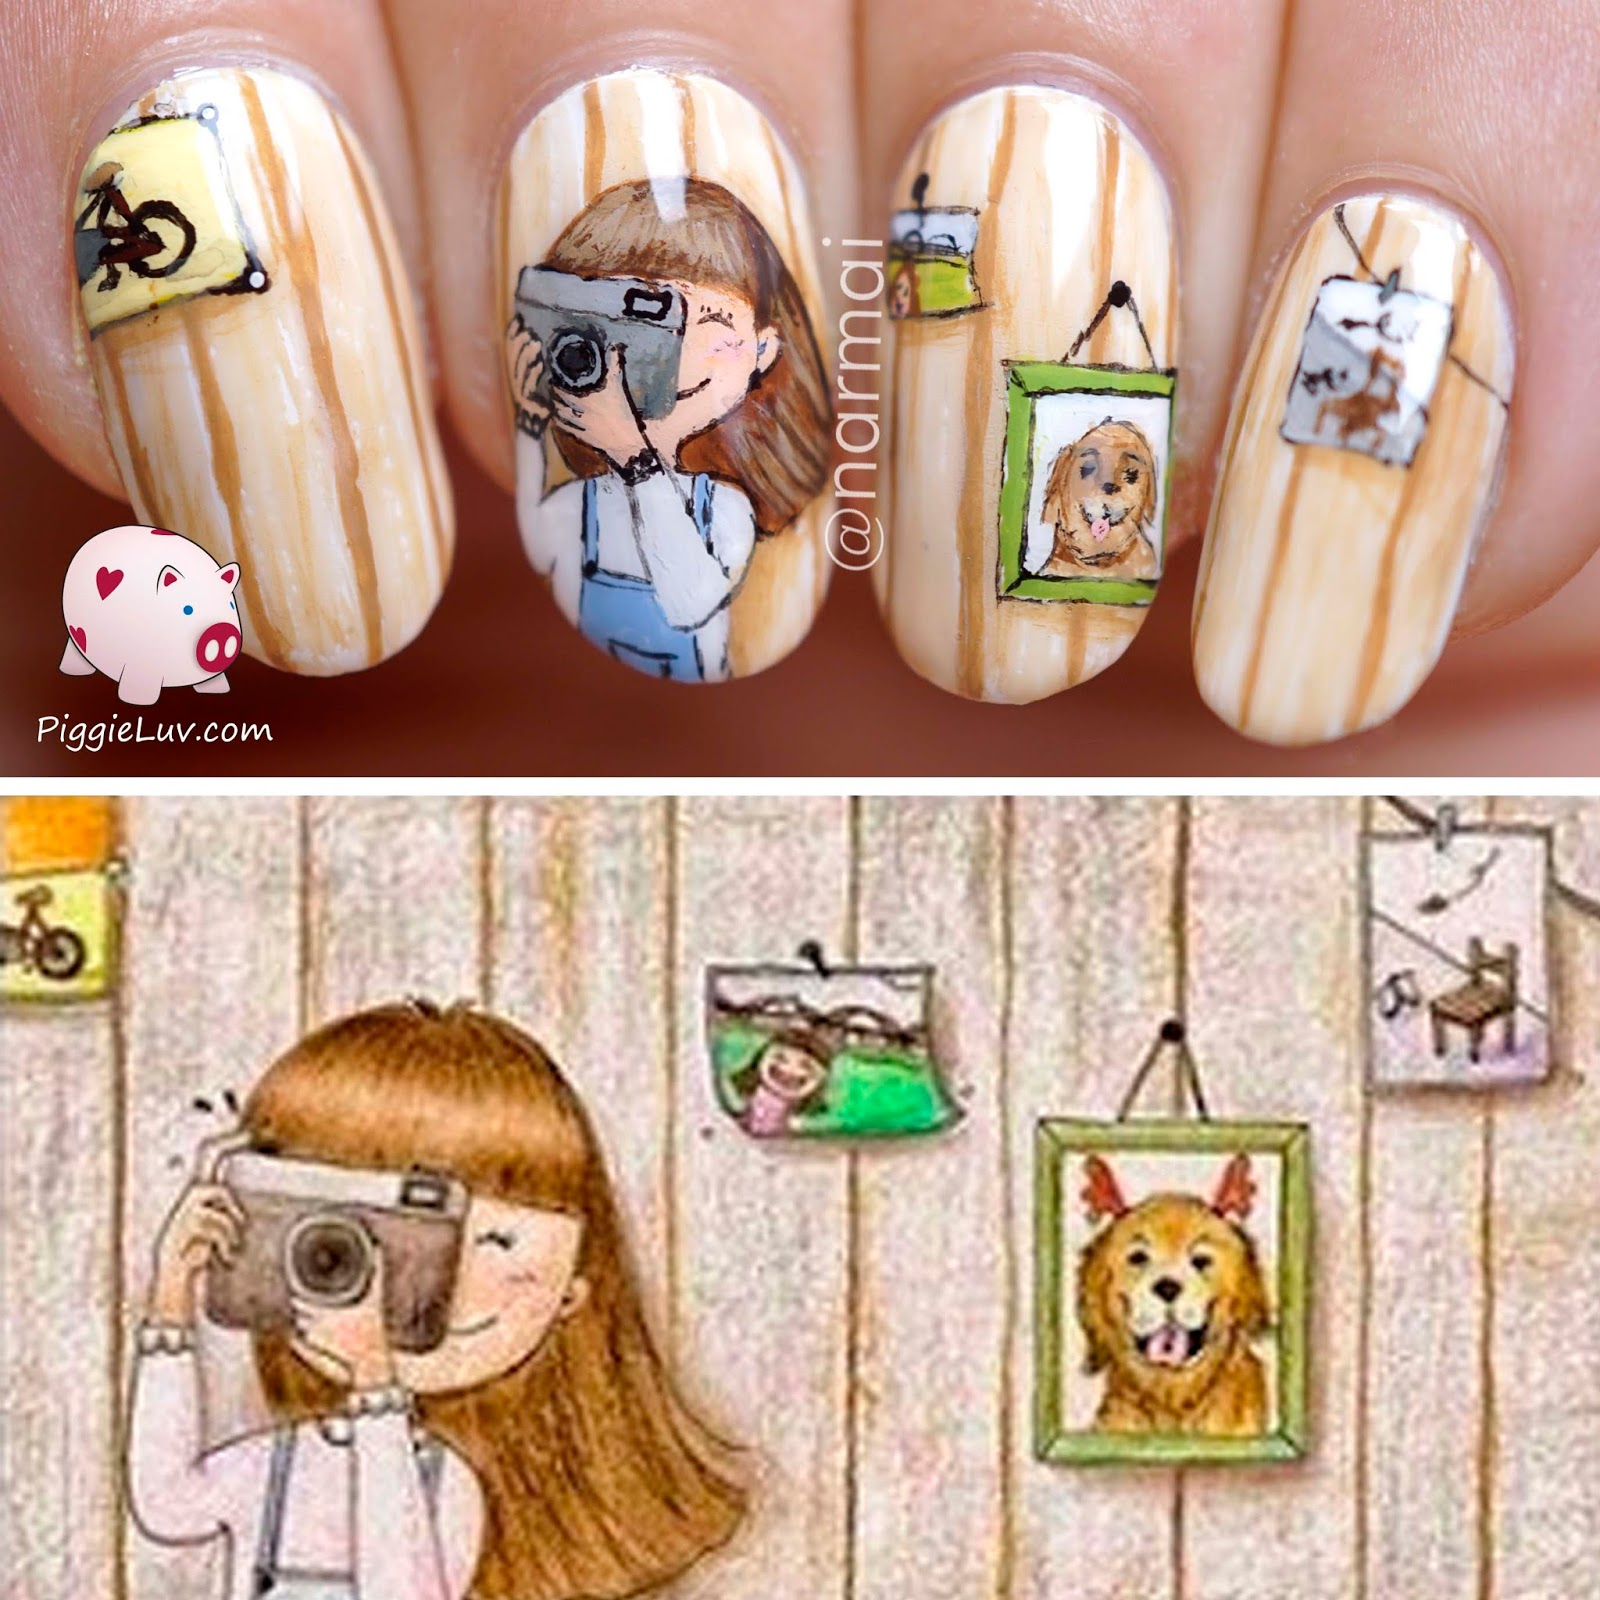 Piggieluv The Little Photographer Nail Art